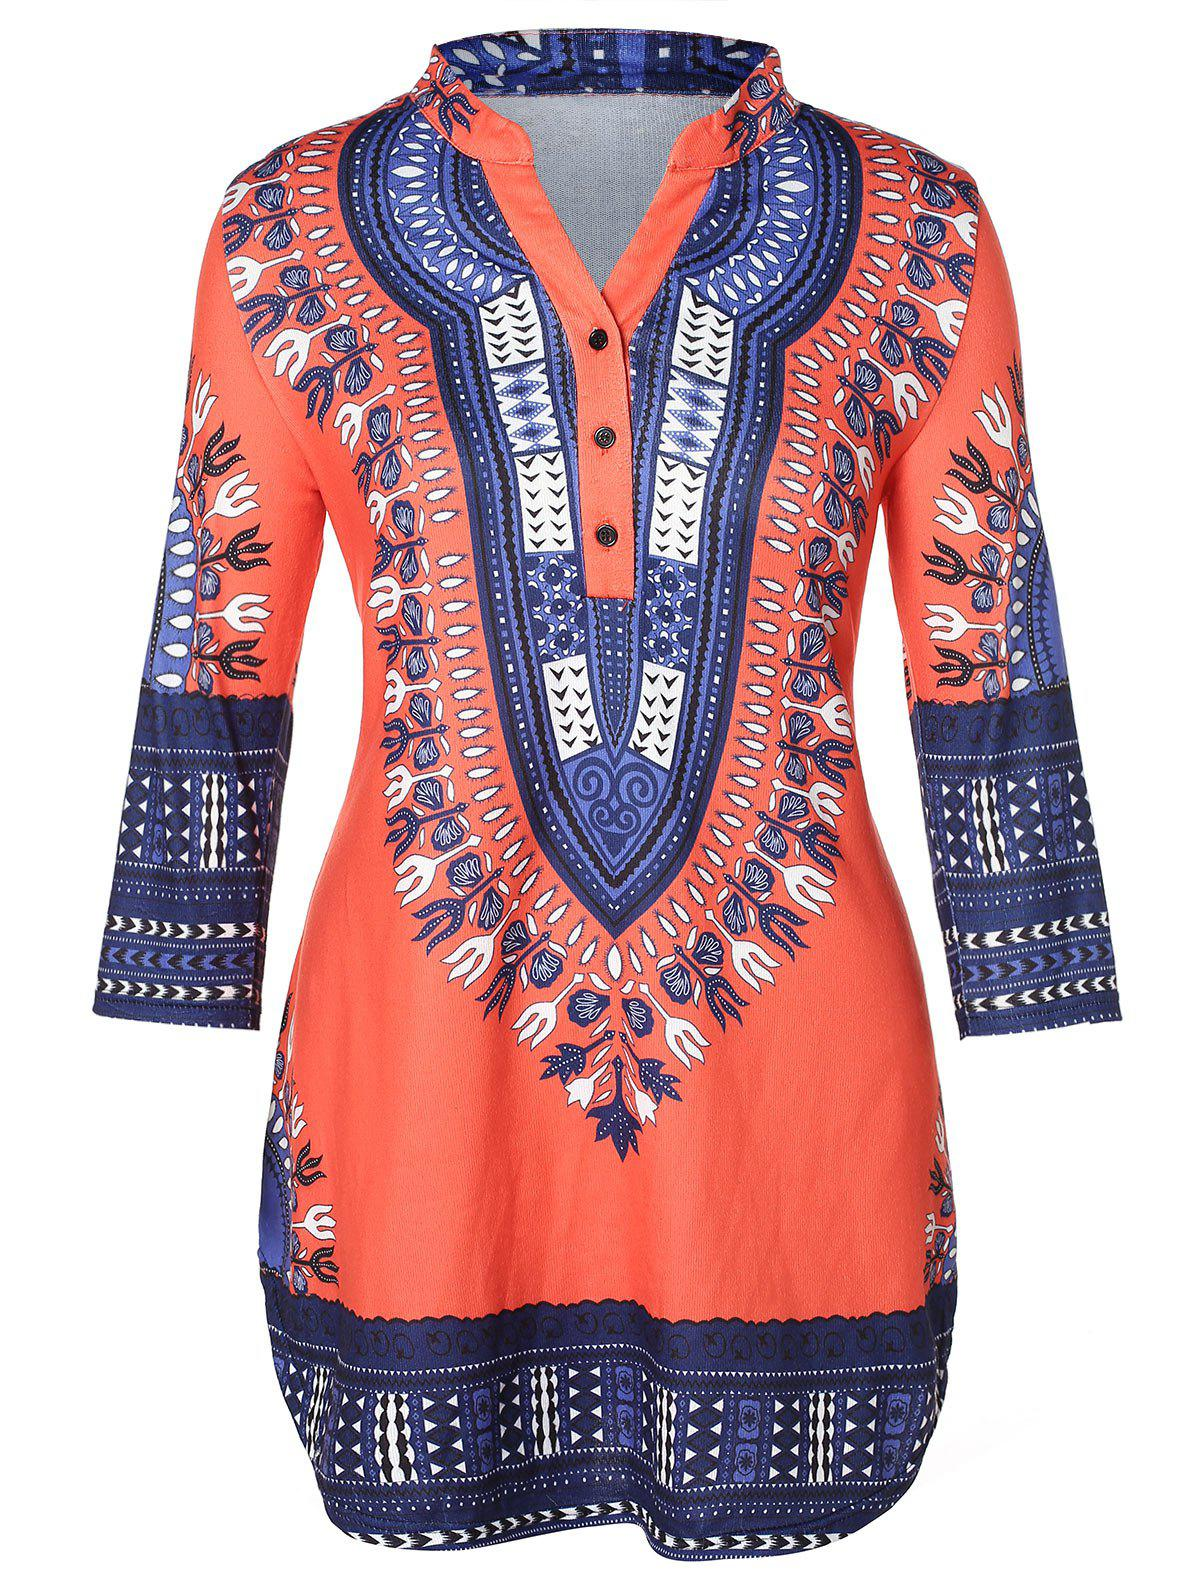 Plus Size Tribal Print Curved T-shirt - multicolor L